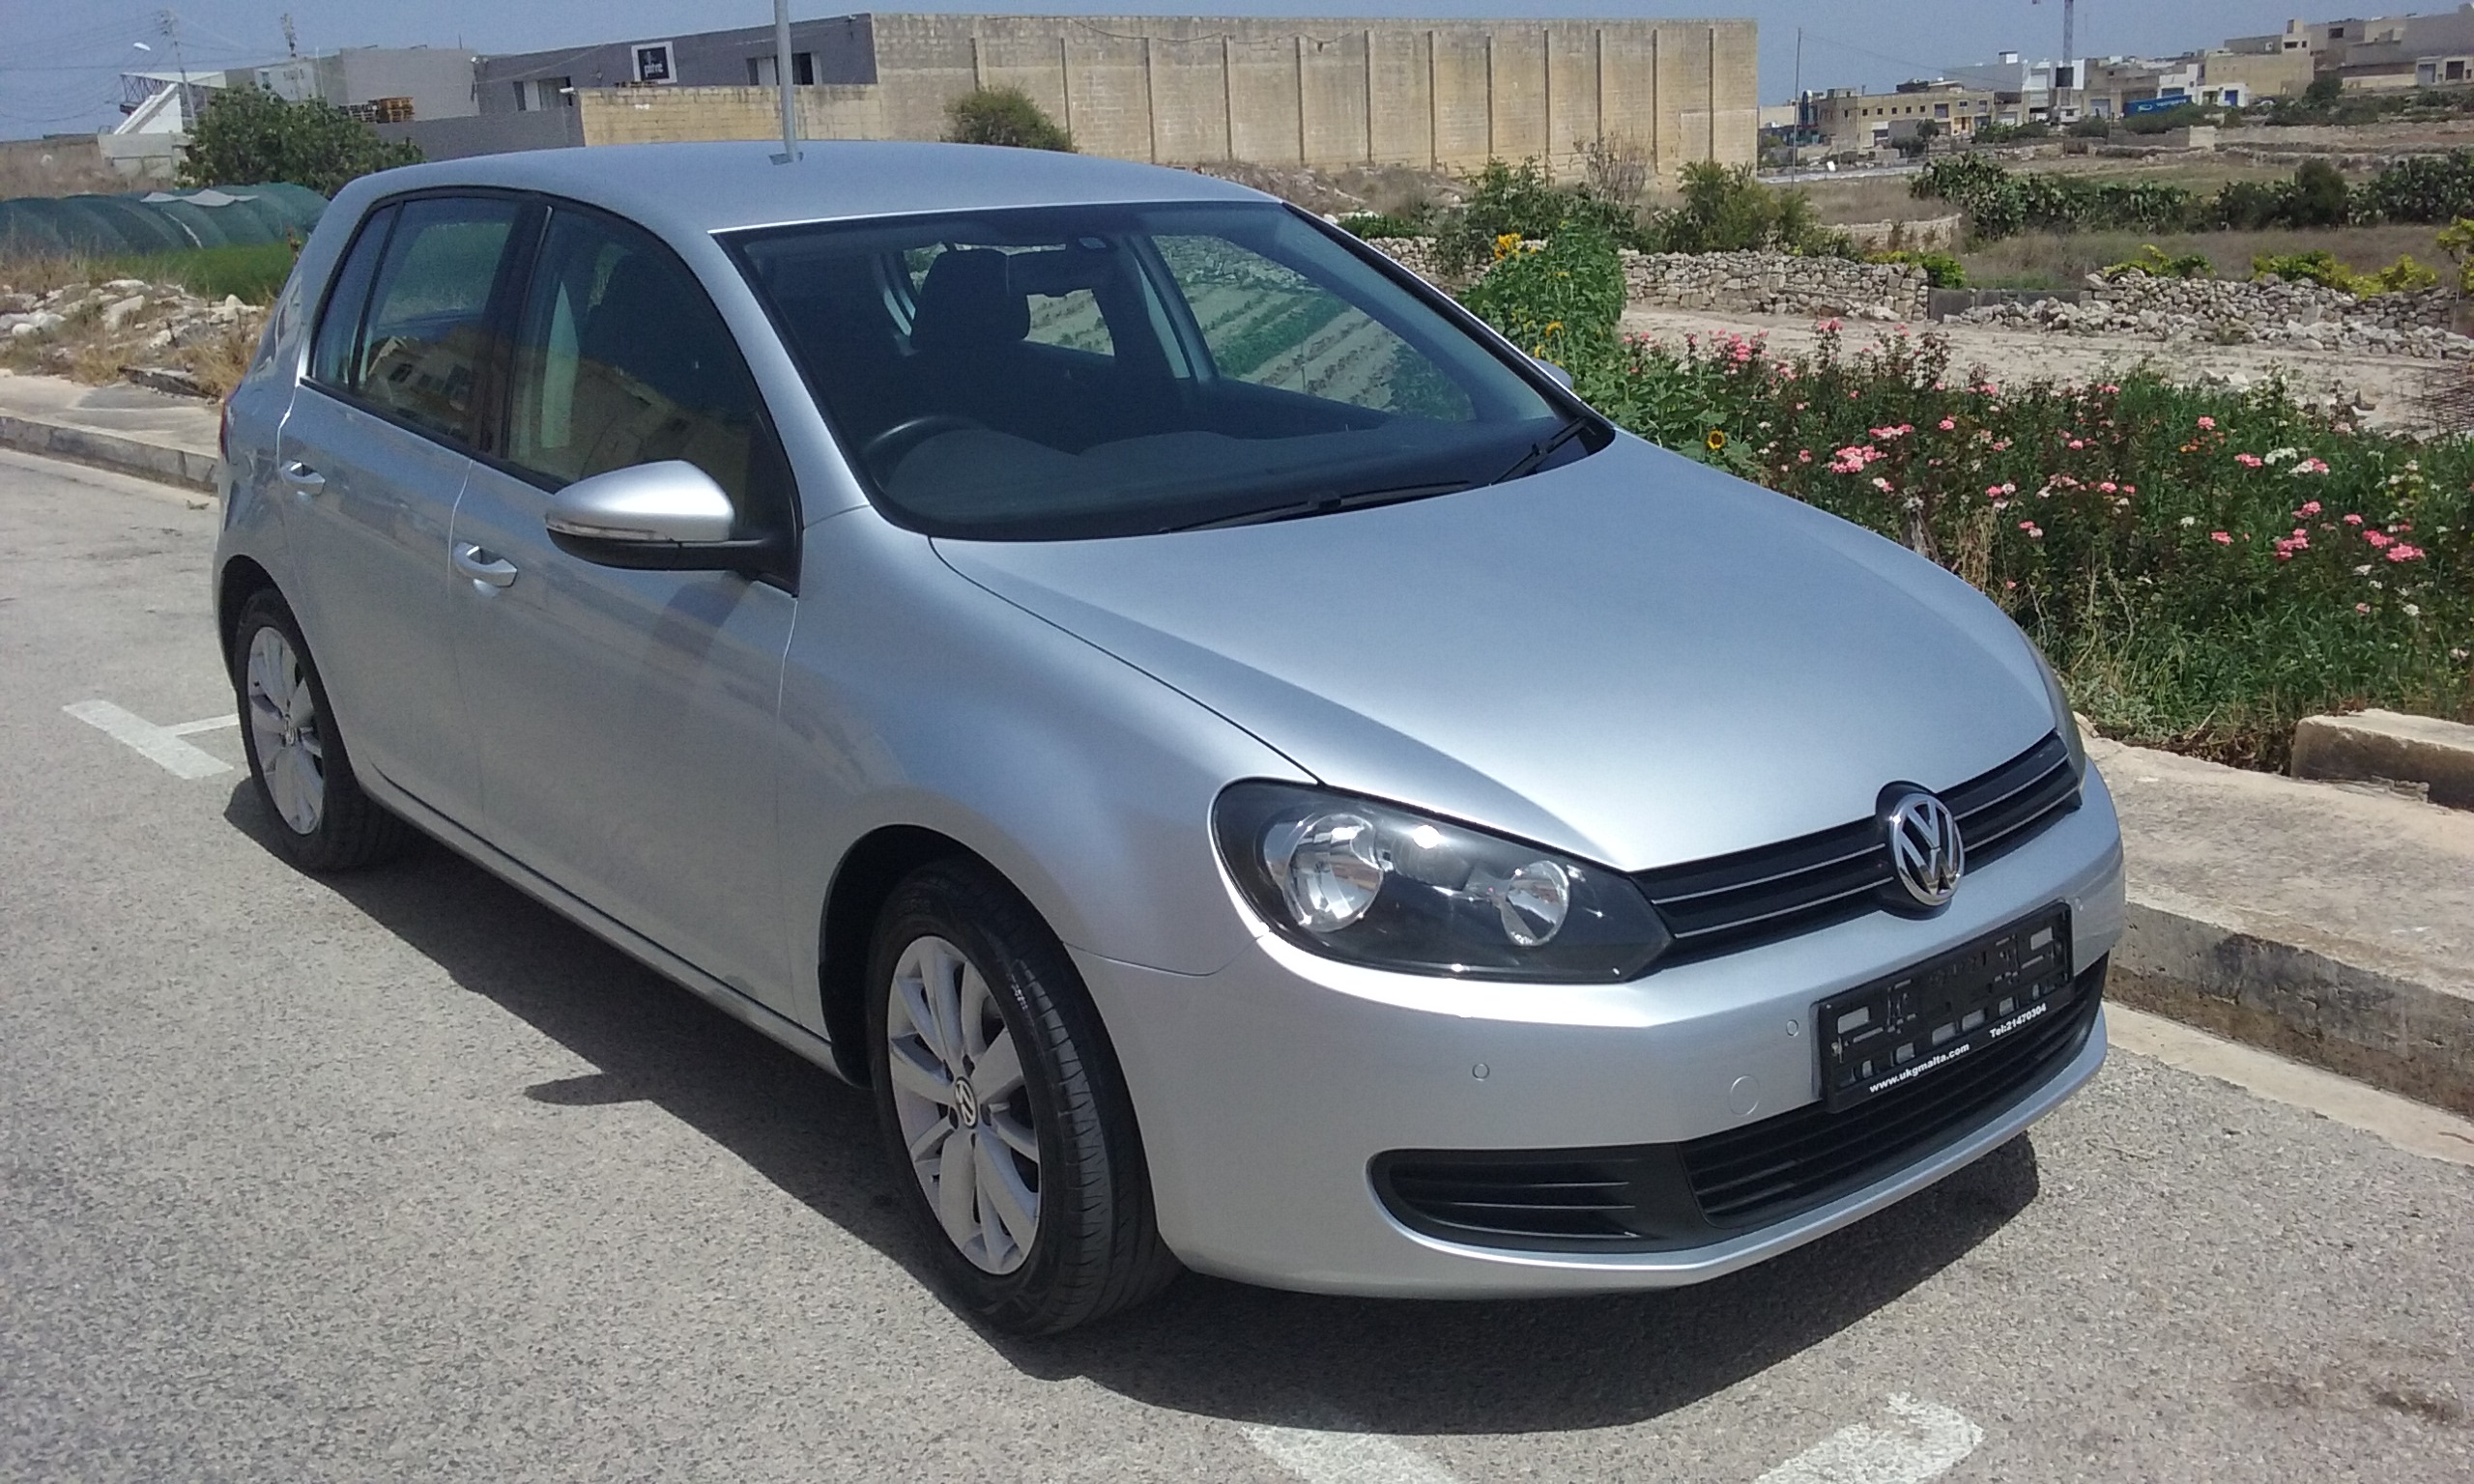 Vo;kswagen Golf 2011 MK 6 SOLD